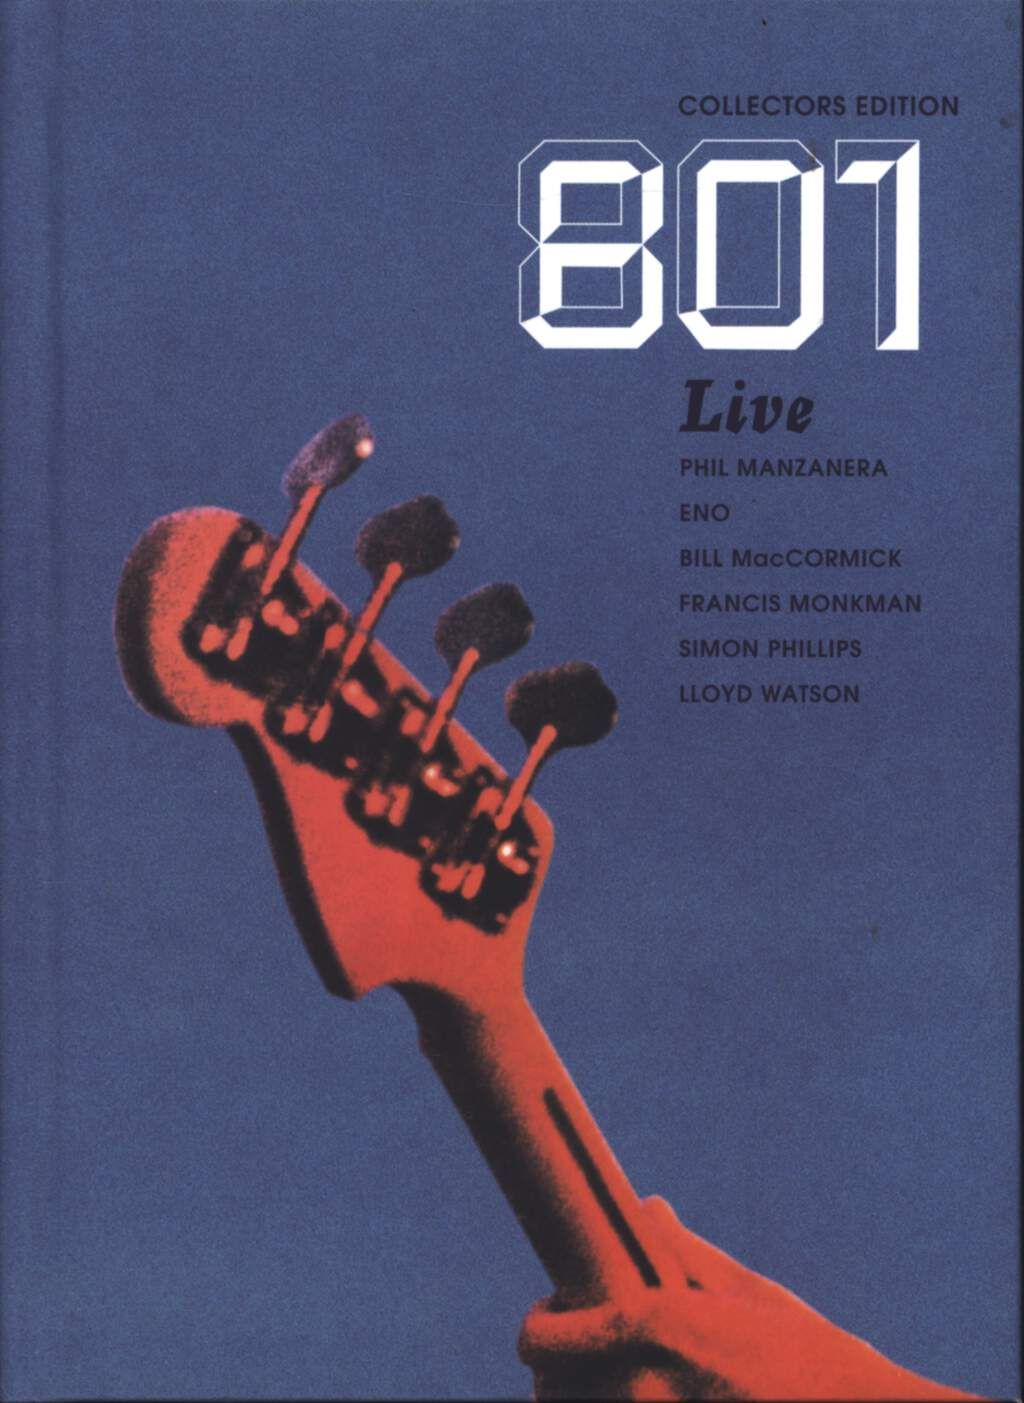 801: Live - Collector's Edition, CD